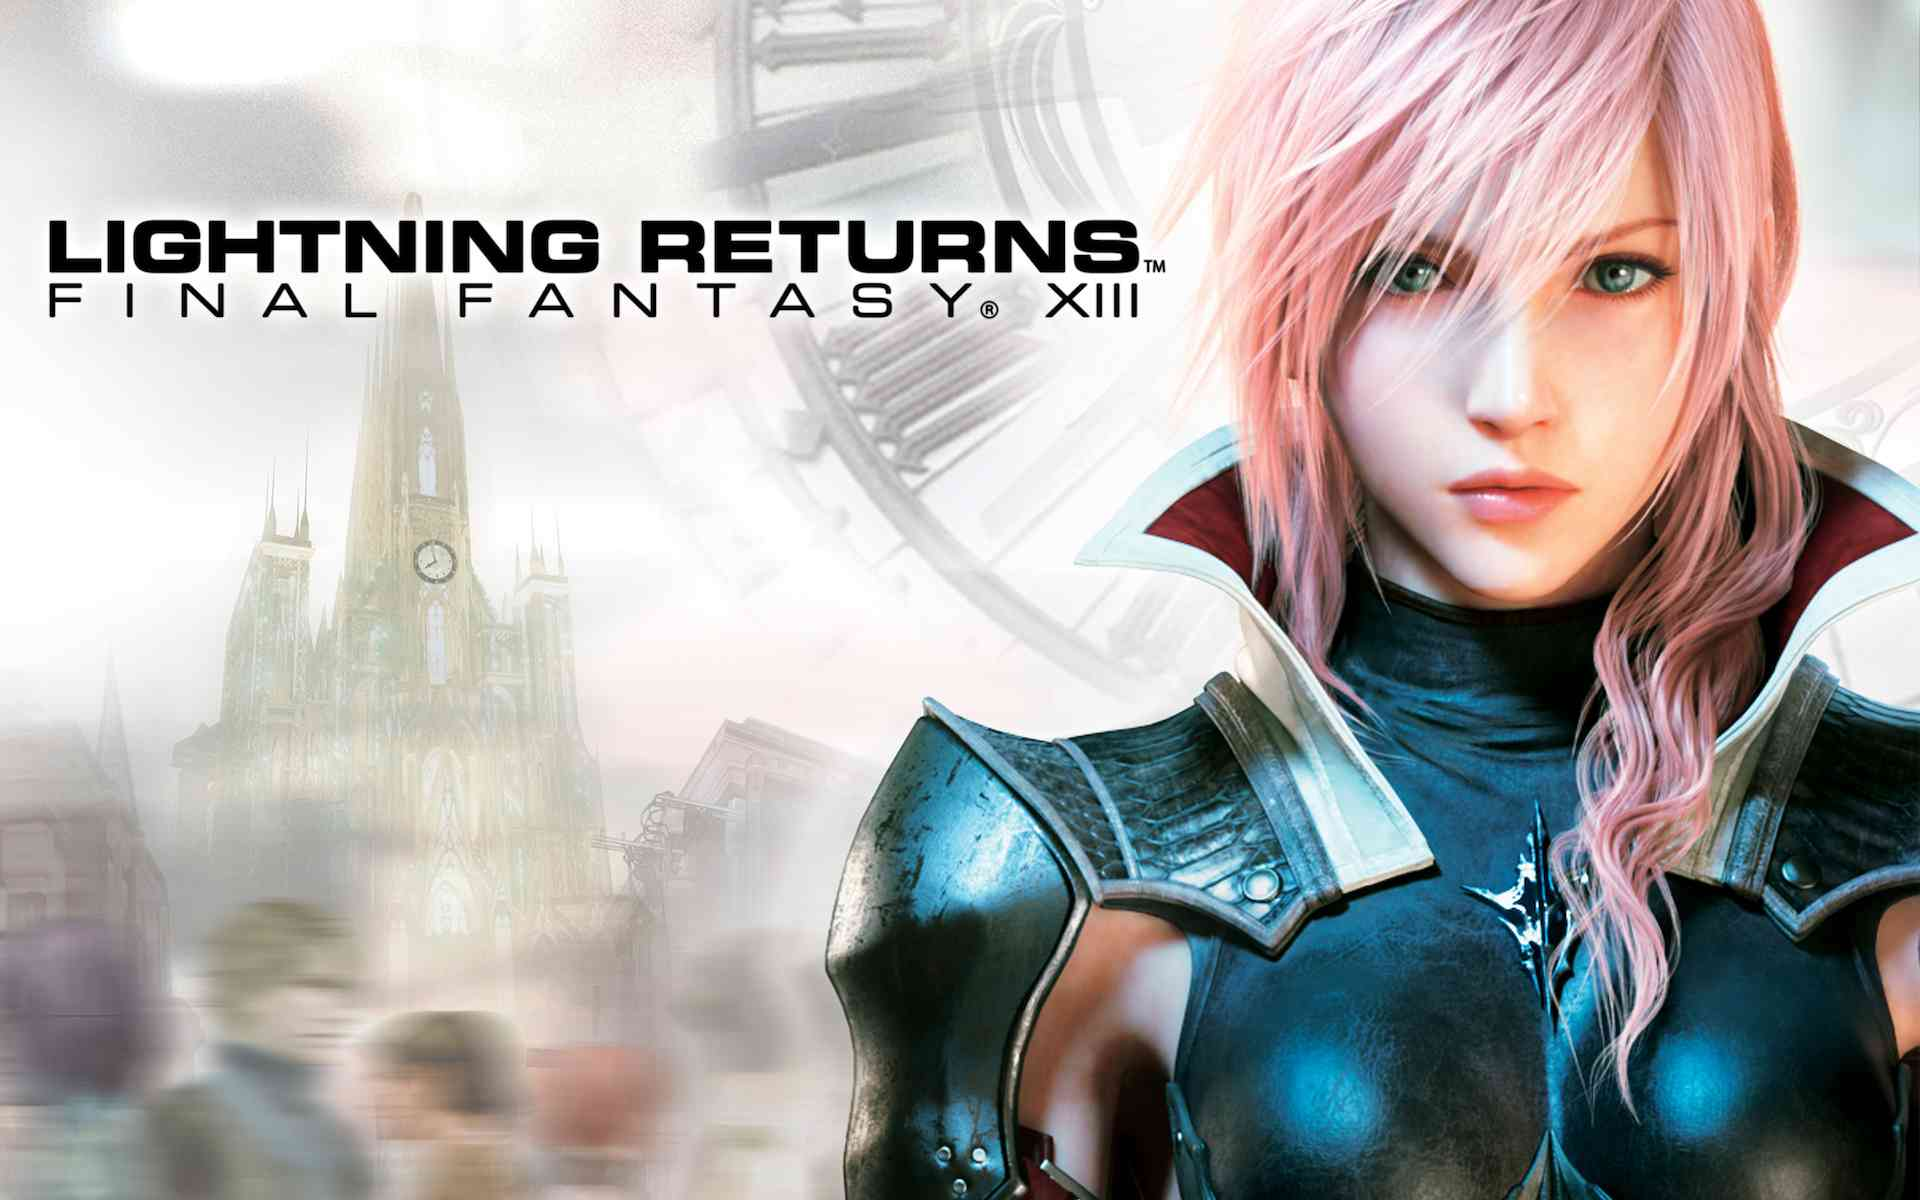 FFXIII Spot Shows Live Action Lightning